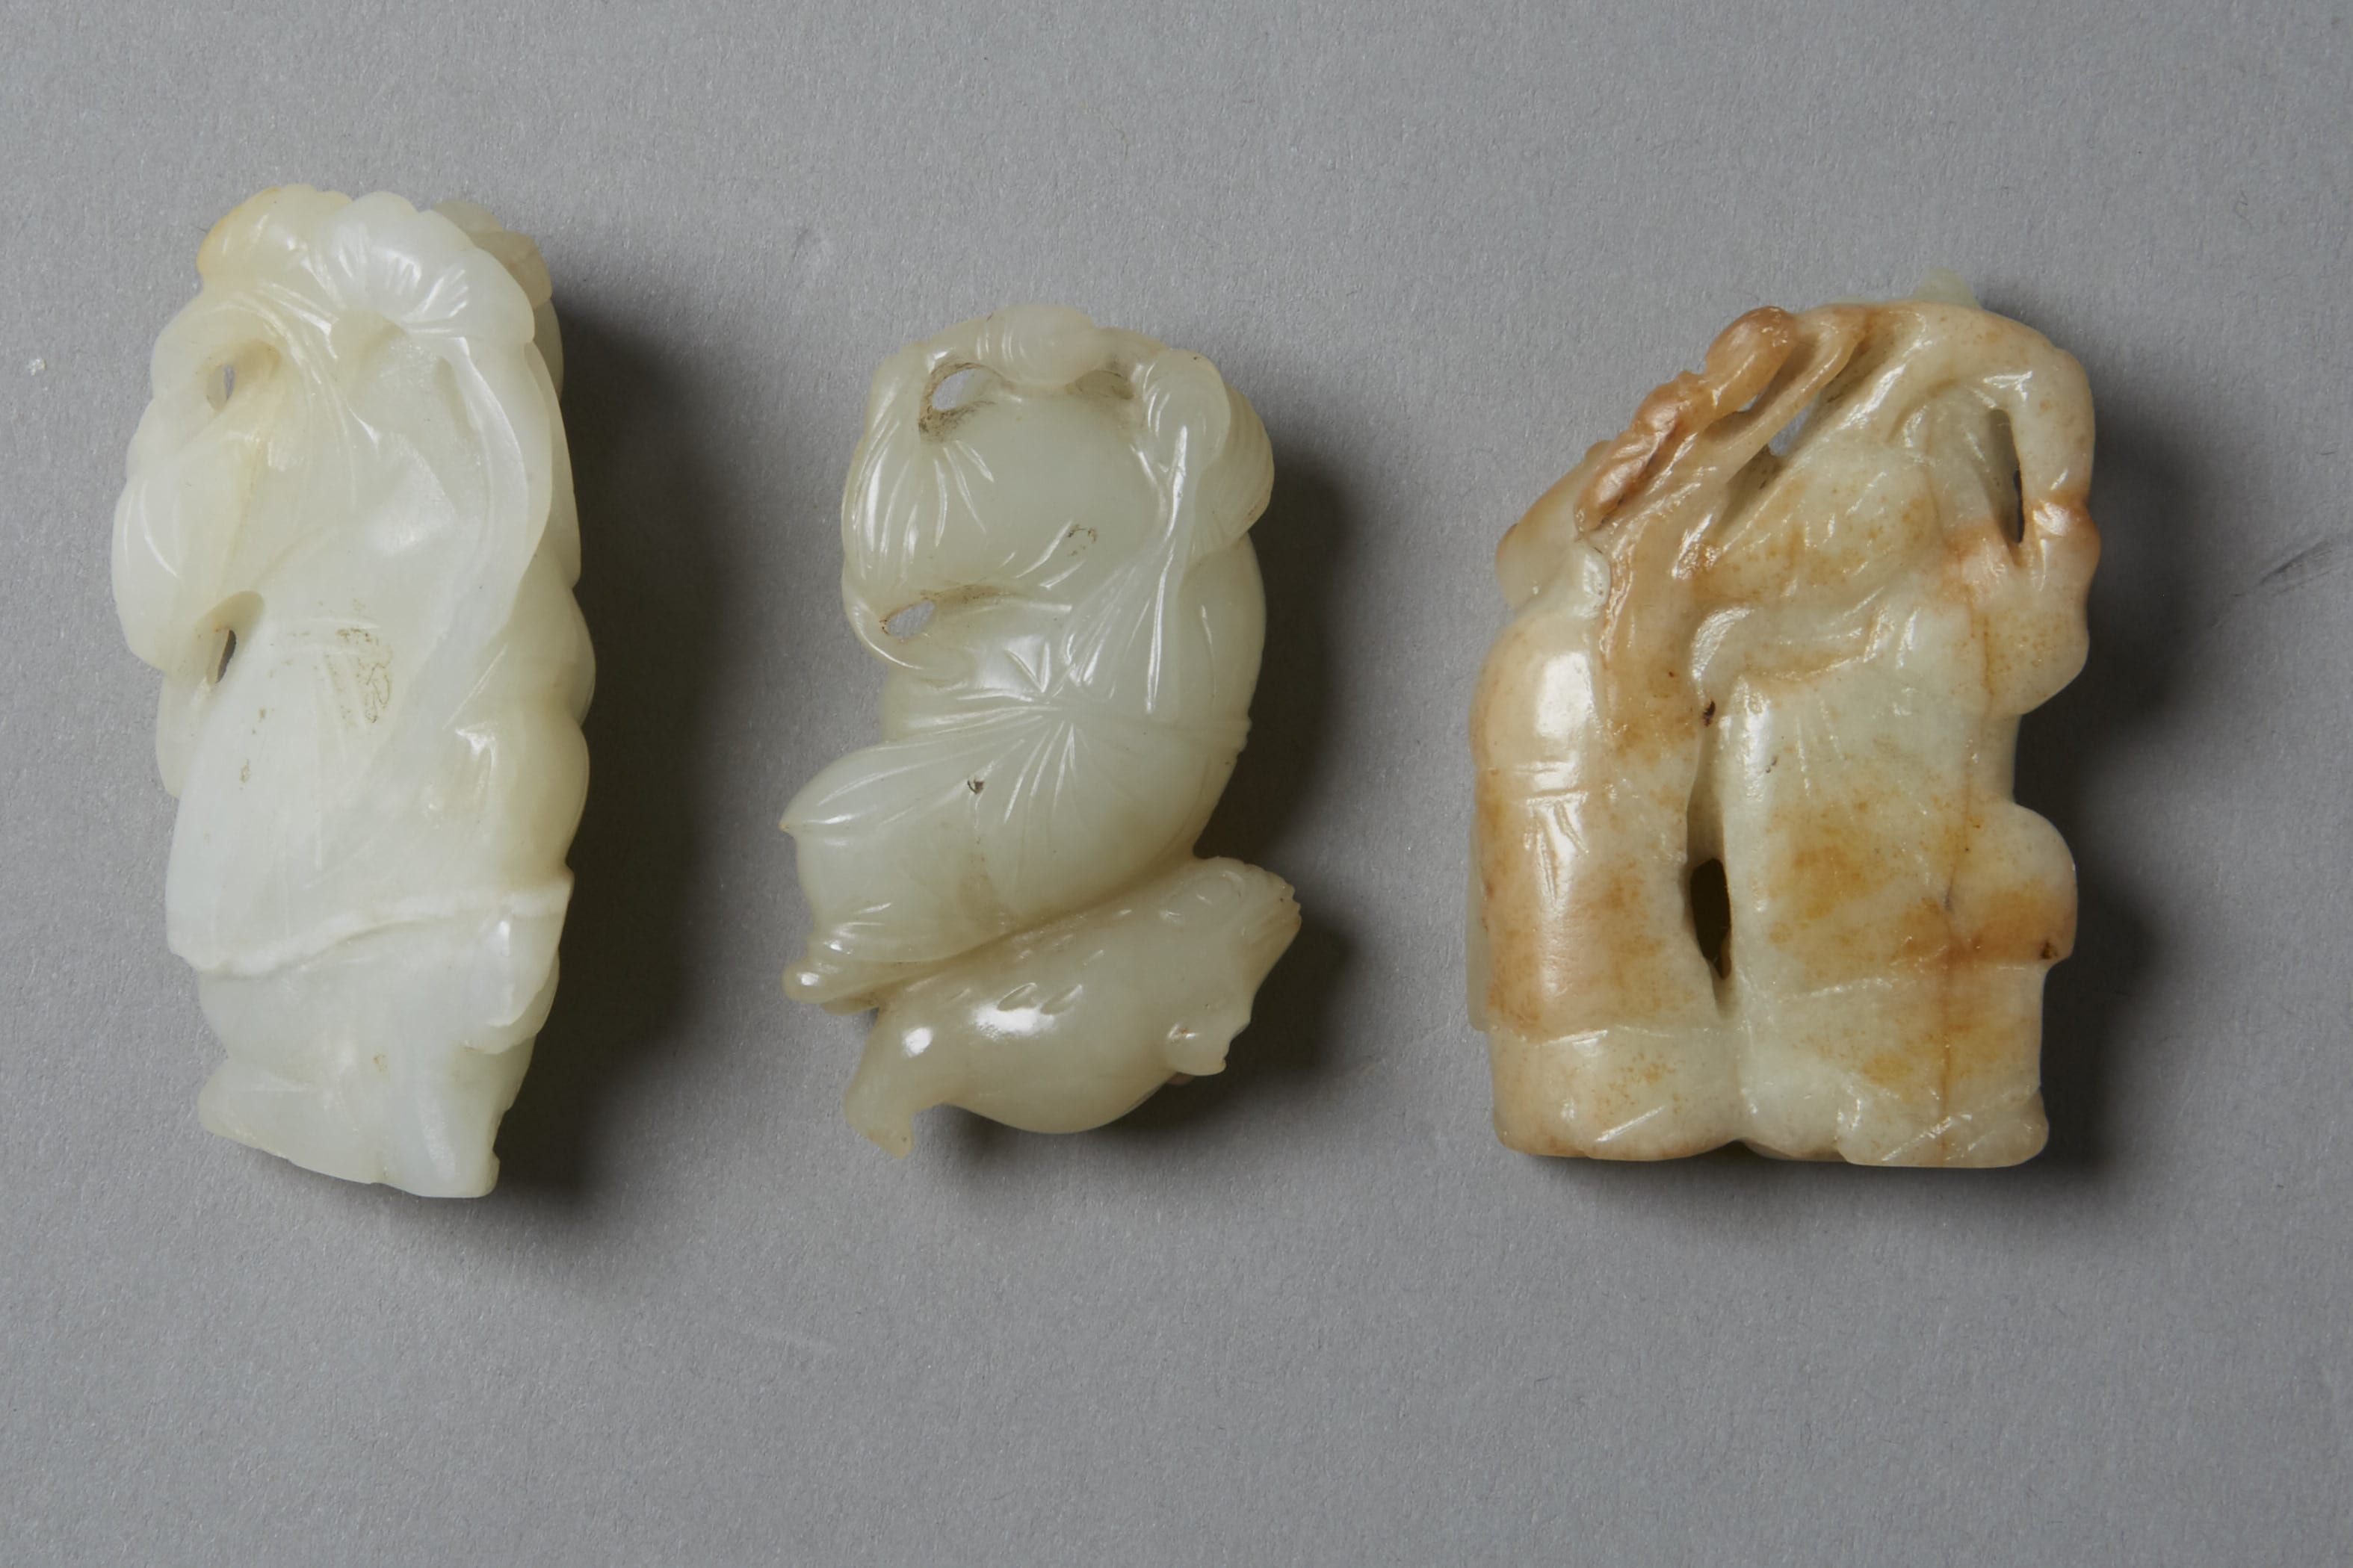 Lot 016: Group of 3:  19th century Chinese Jade Carved Figures